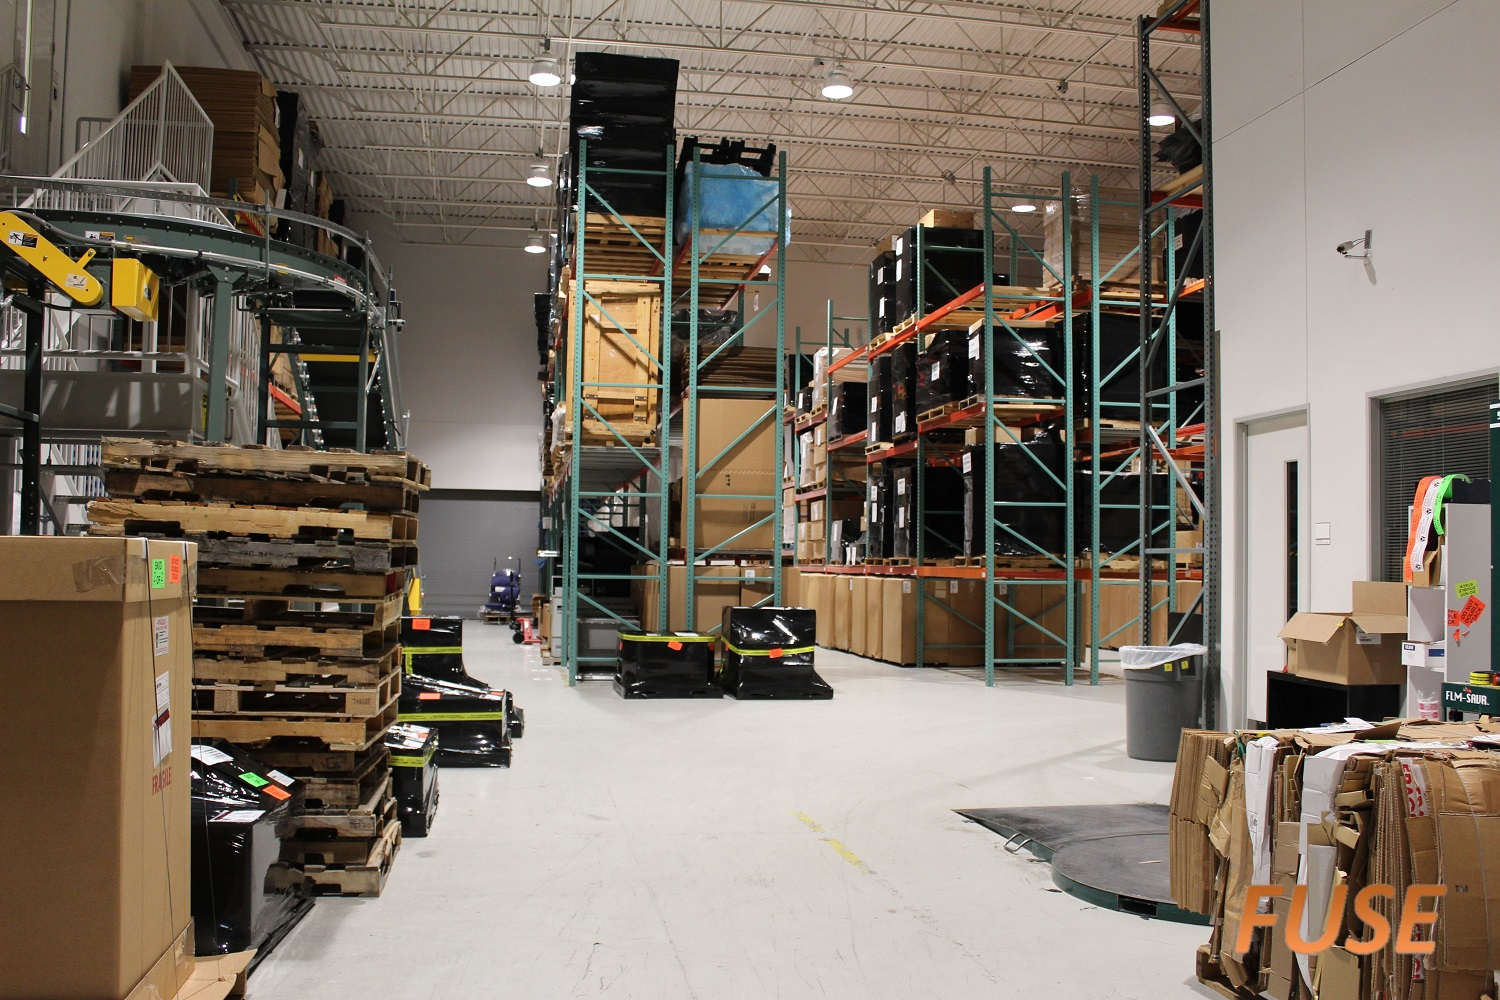 FUSE Lighting - Warehouse LED Lighting Solutions for Houston, Texas